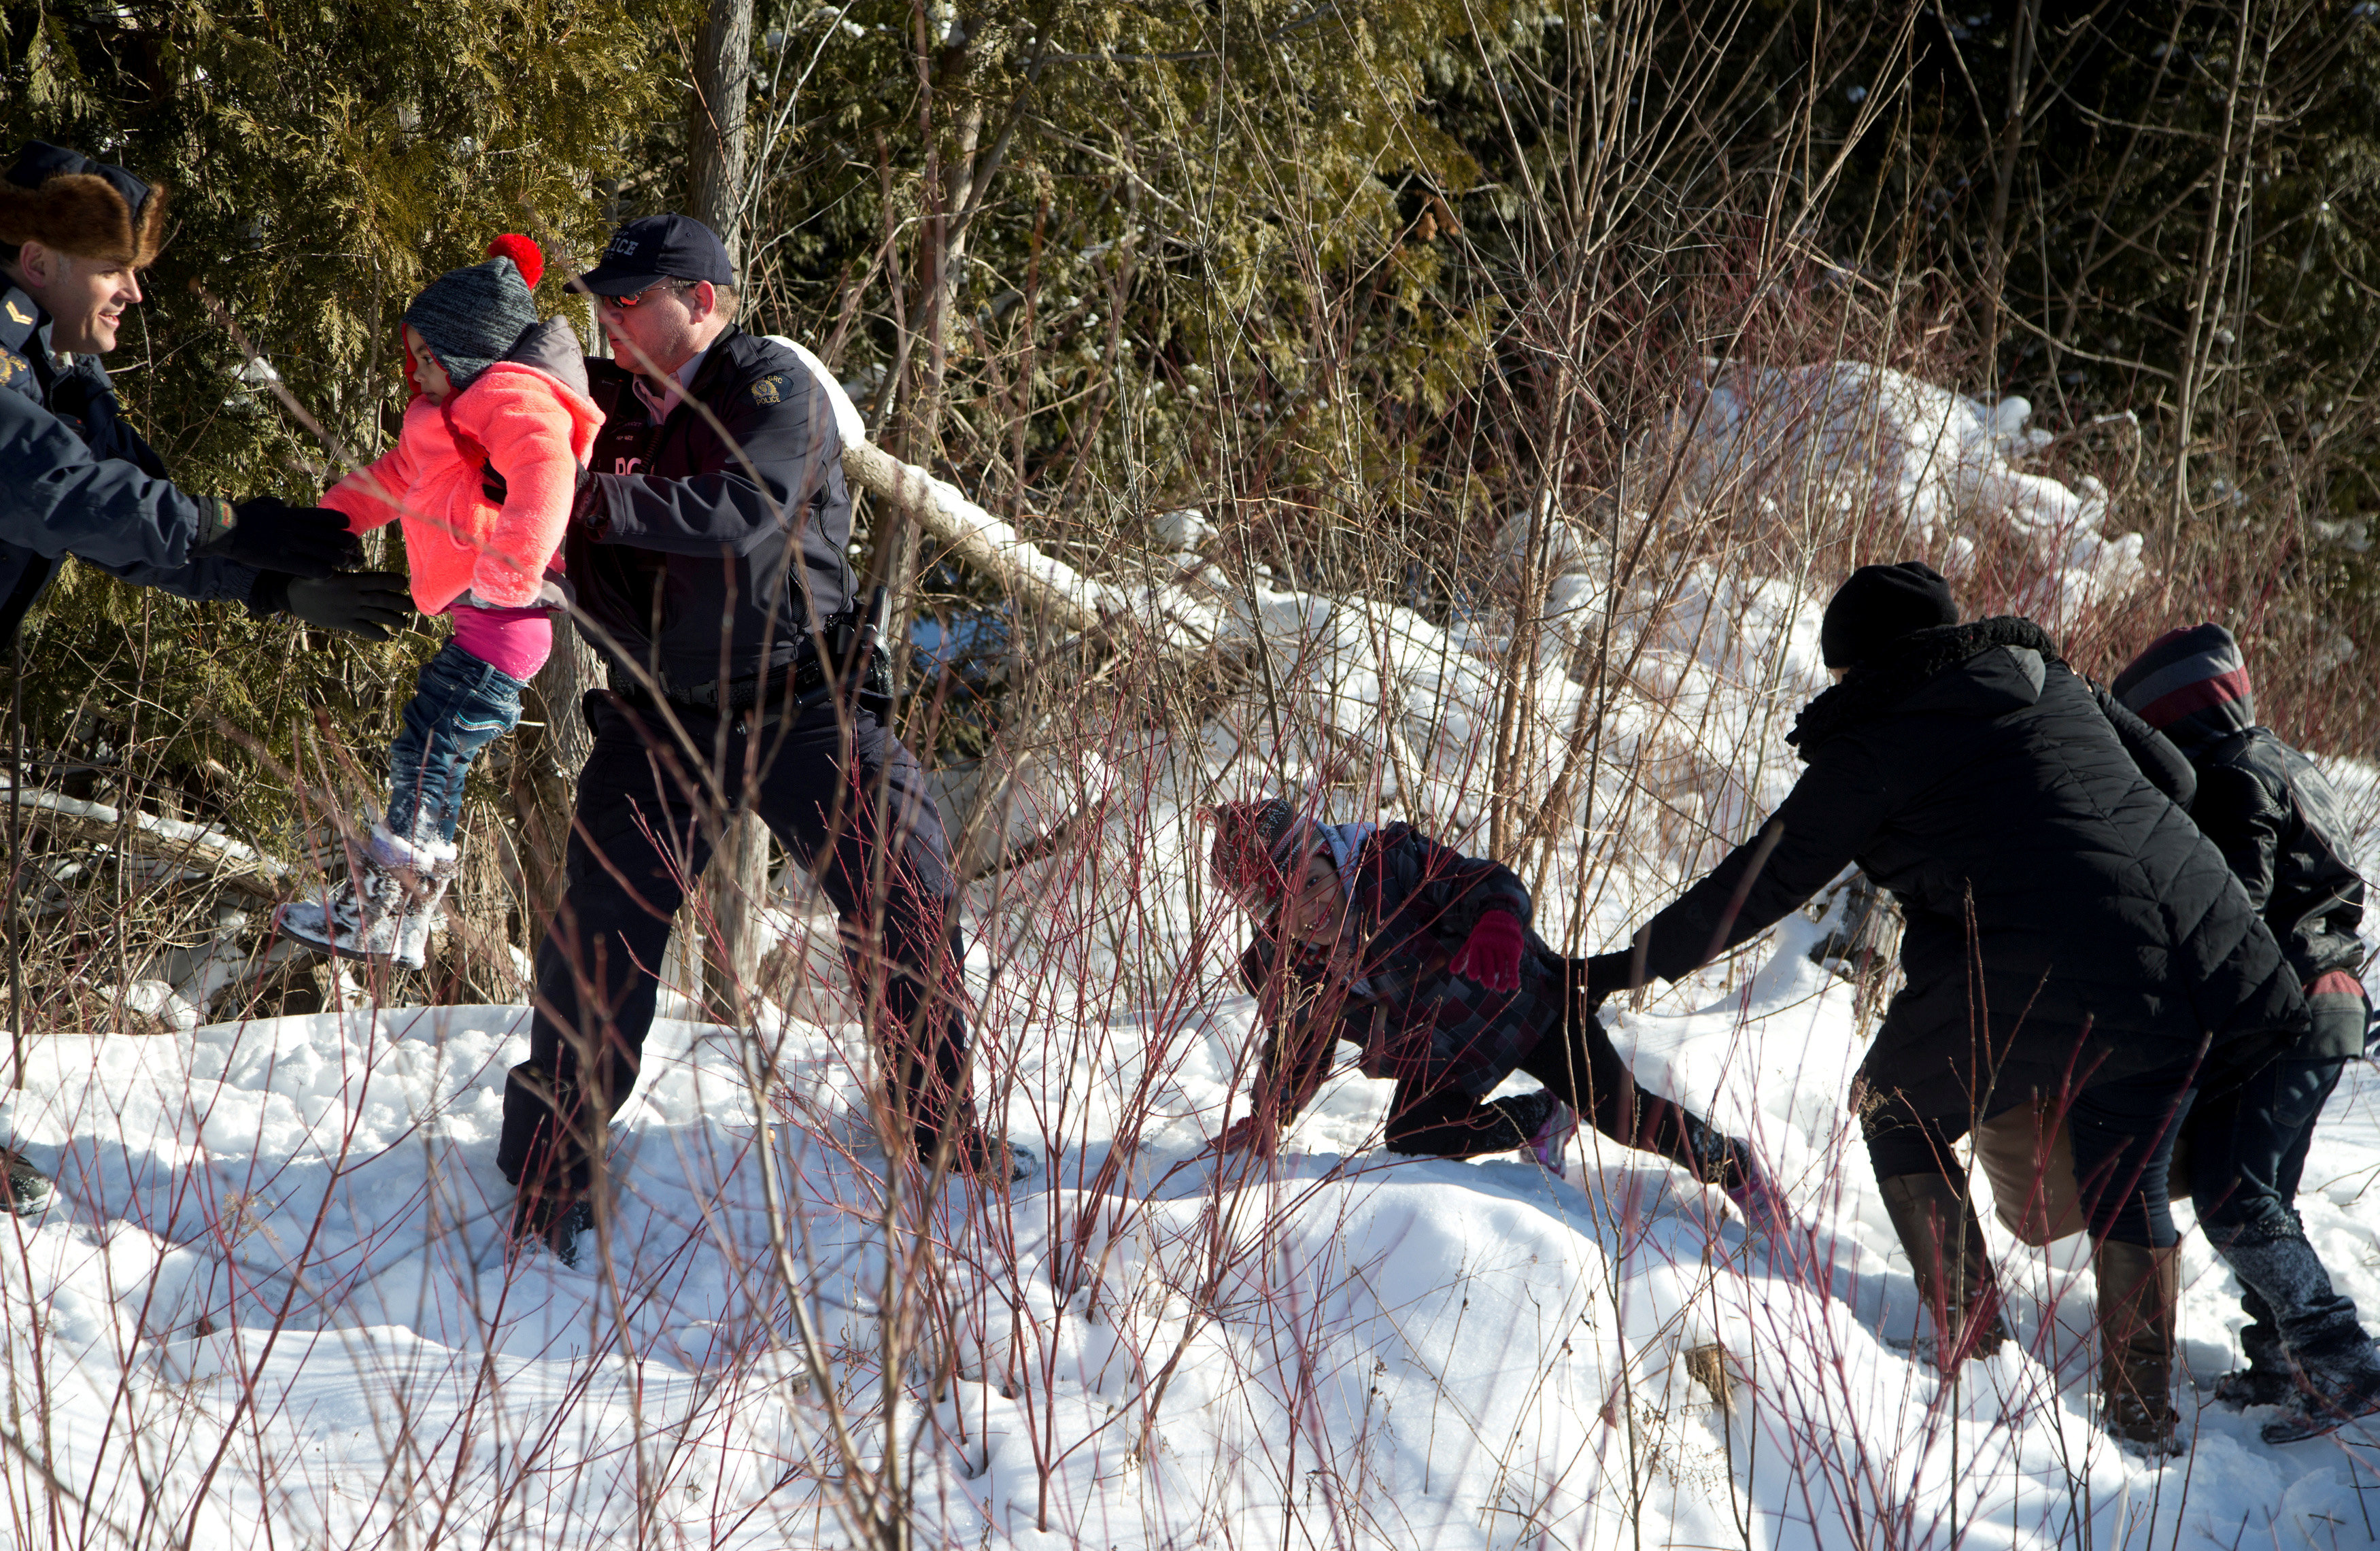 Royal Canadian Mounted Police (RCMP) officers assist a child from a family that claimed to be from Sudan as they walk across the U.S.-Canada border into Hemmingford, Canada, from Champlain in New York, U.S. on Feb. 17, 2017. (REUTERS/Christinne Muschi)